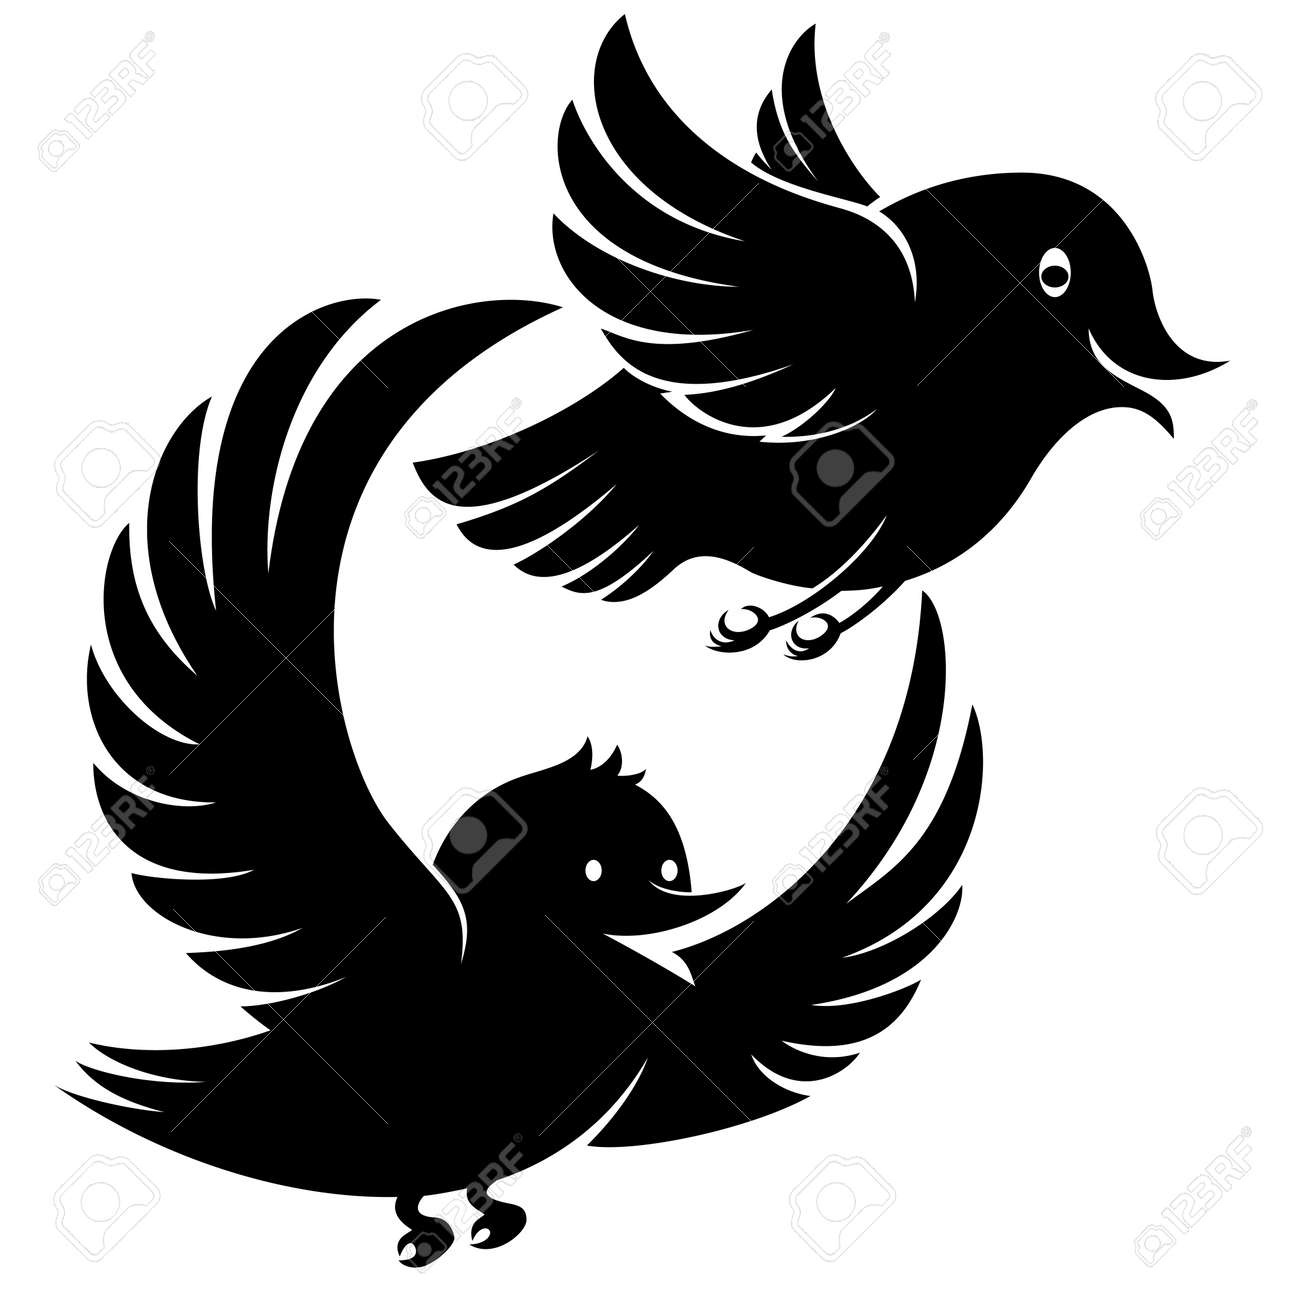 flying bird icons Stock Vector - 17417900